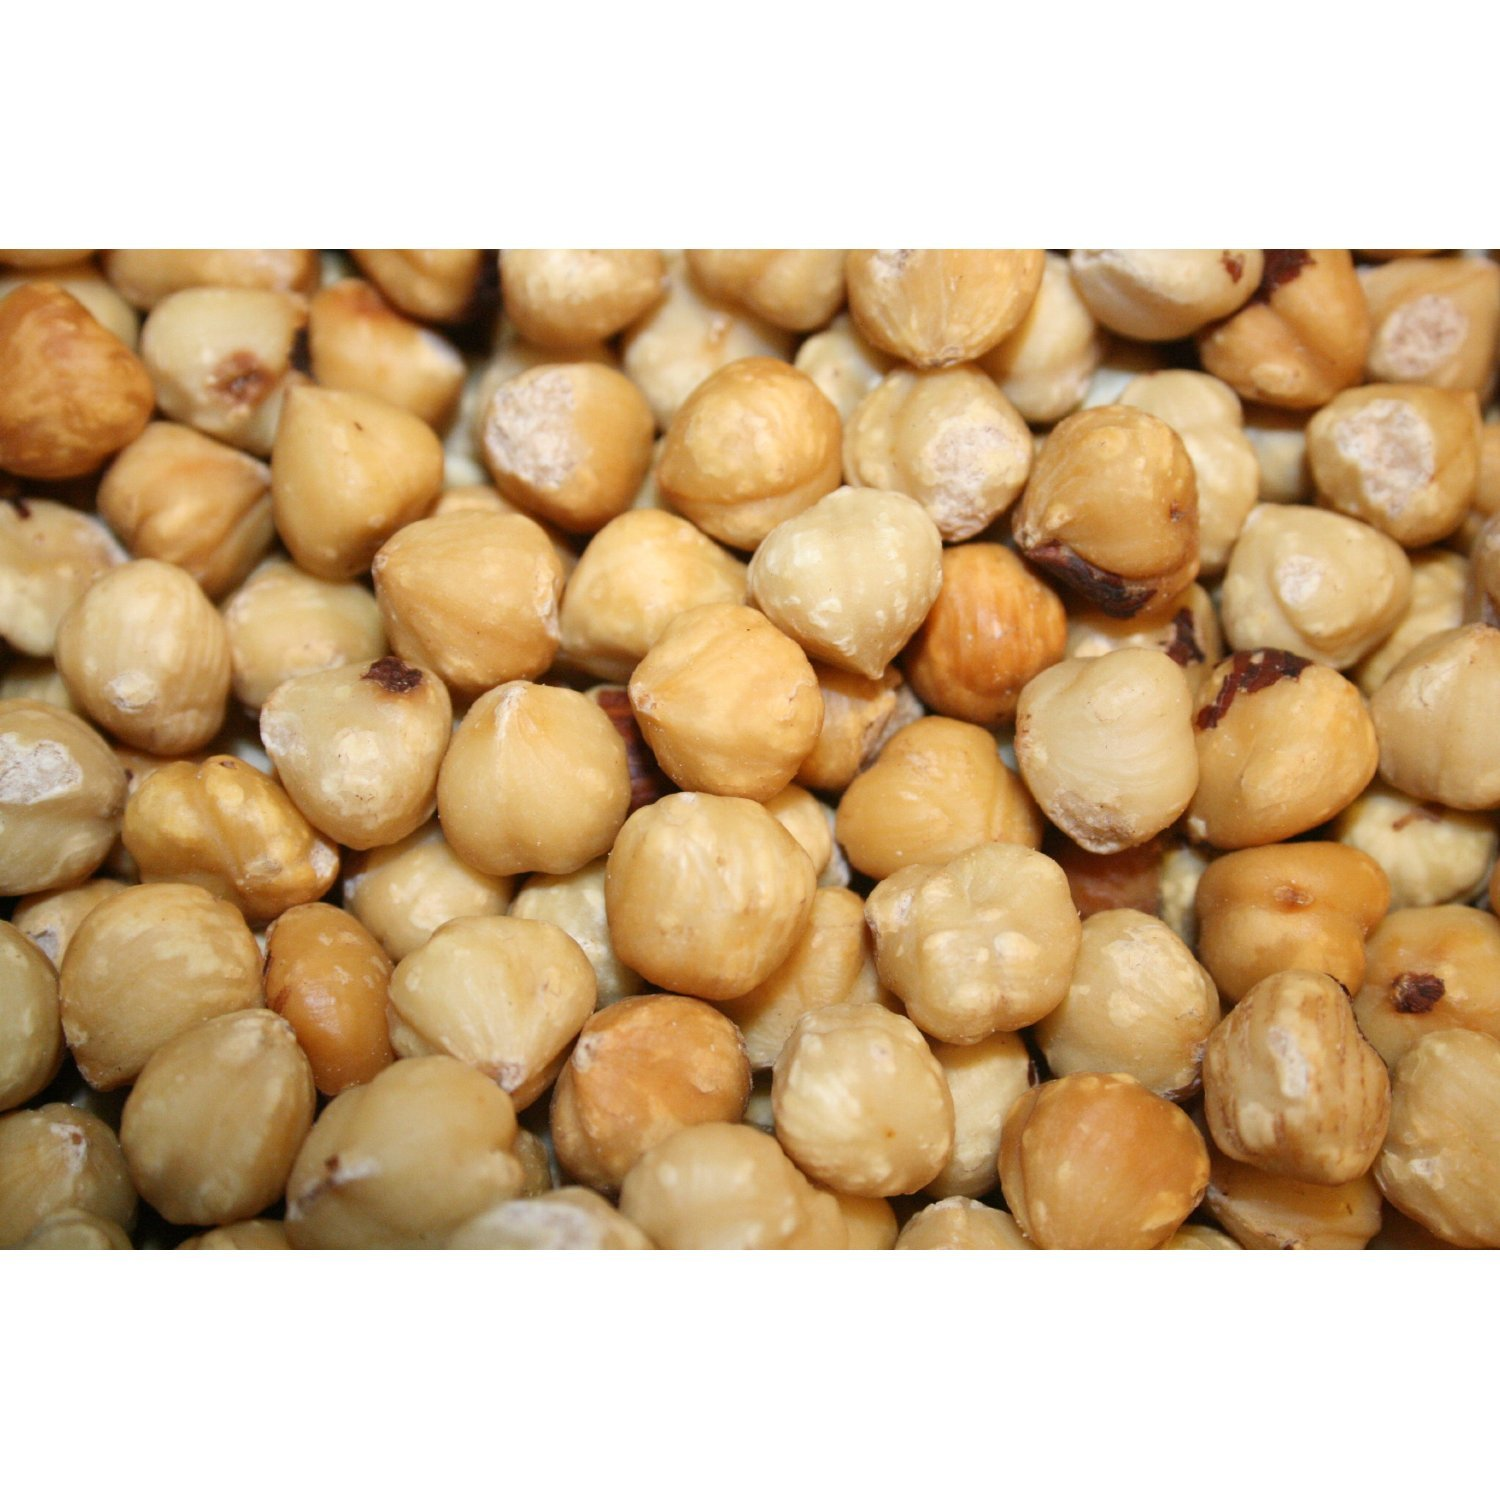 Hazelnuts Blanched Roasted Unsalted 3Lbs Max 77% OFF Import